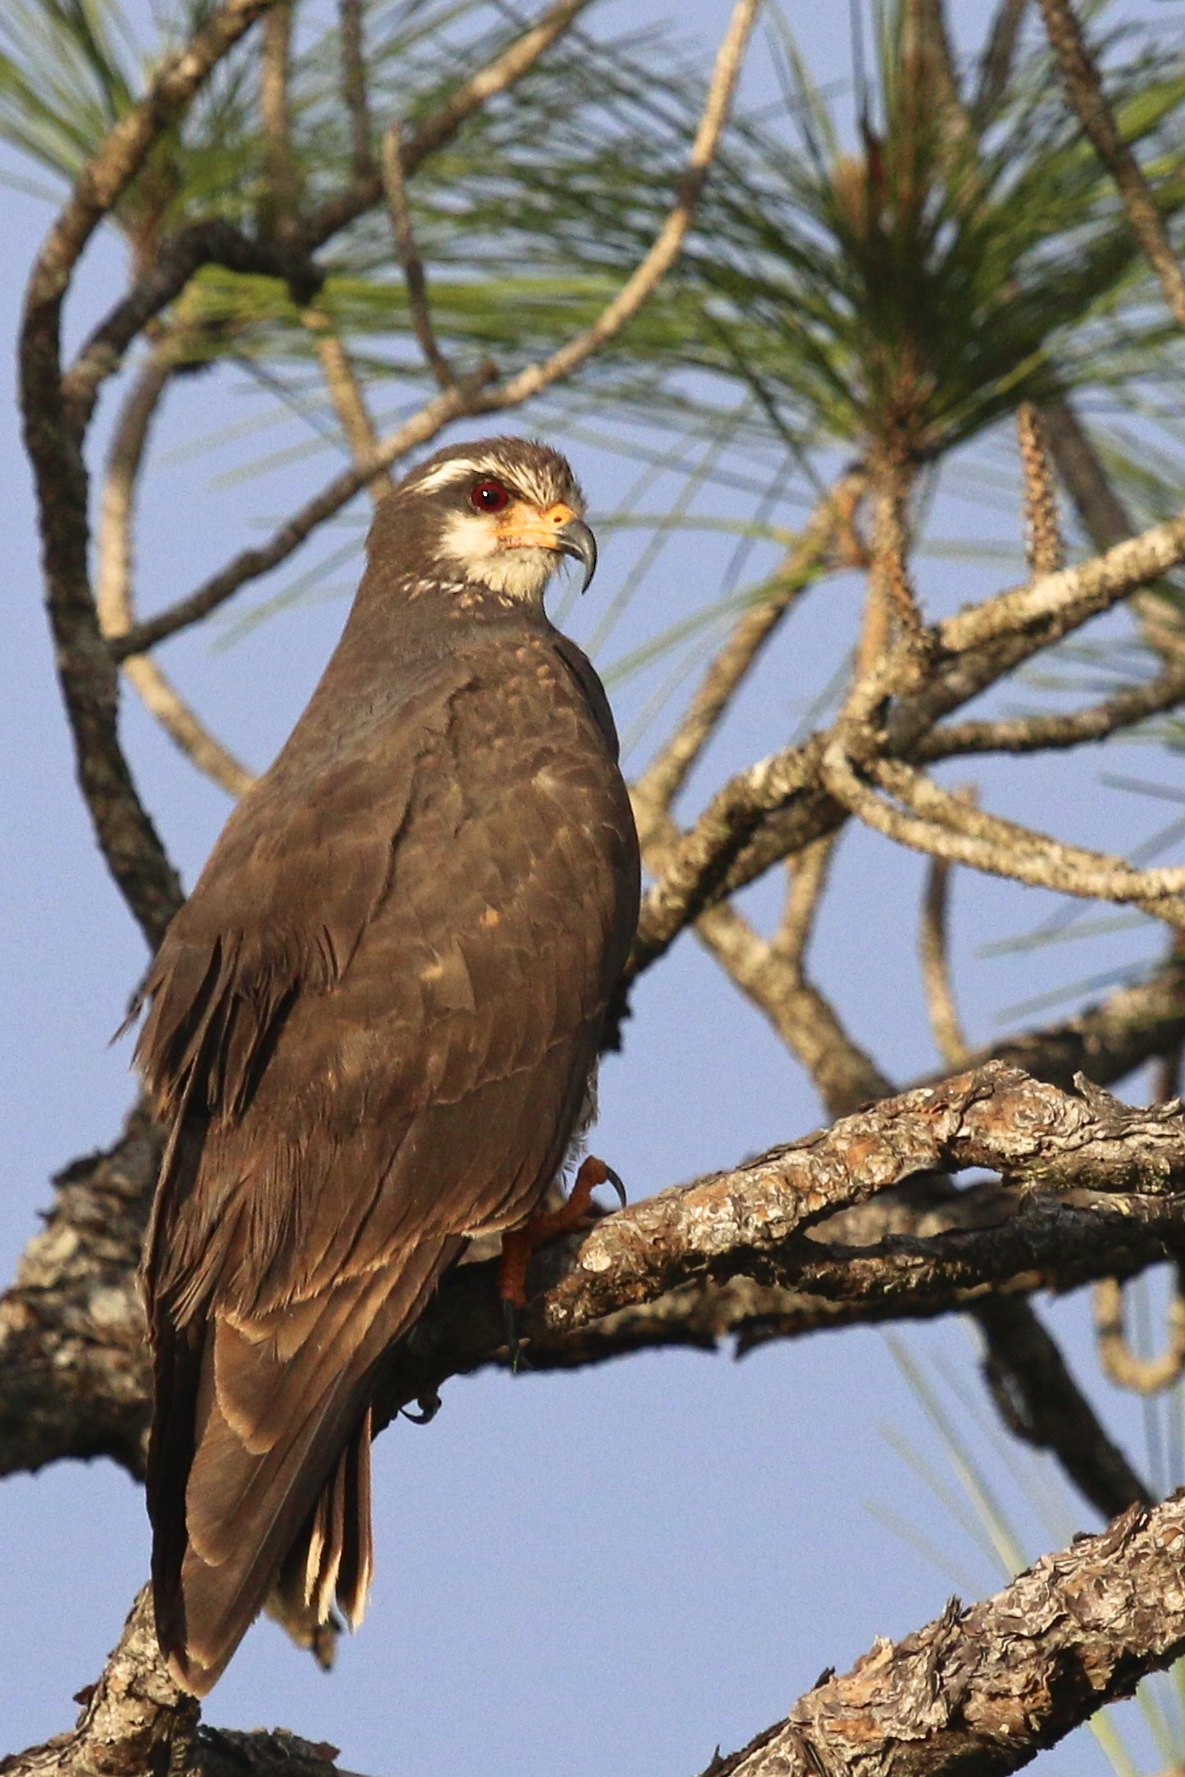 ~A female Snail Kite takes a break from snail hunting near Harn's Marsh in Fort Myers Florida, 5/5/15.~